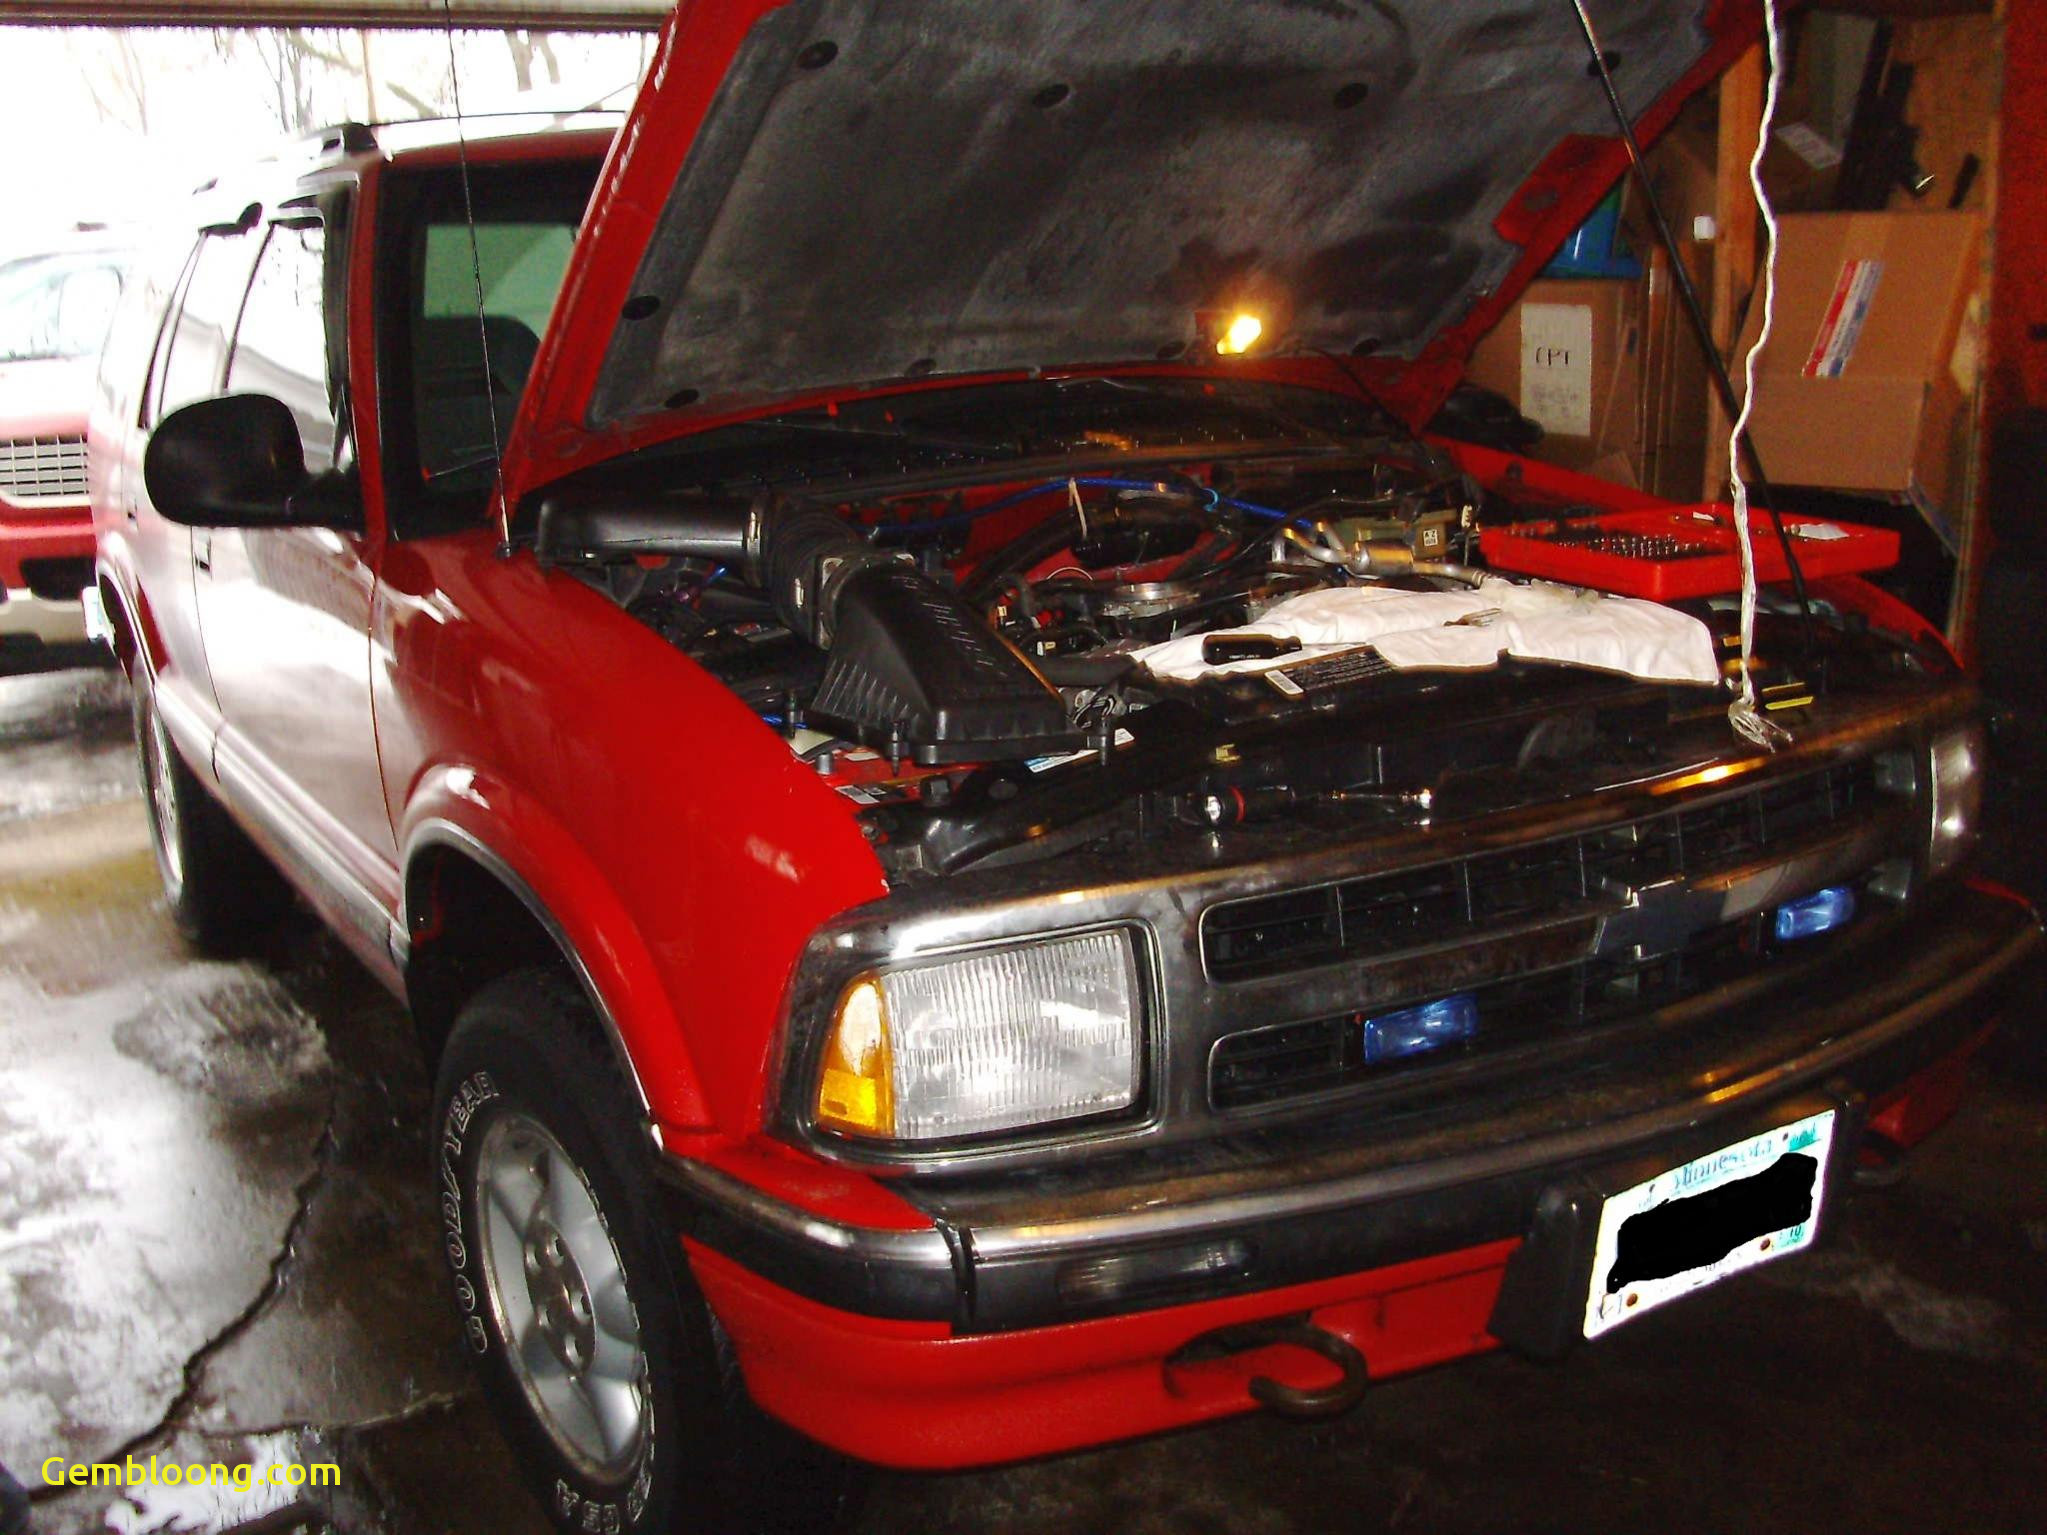 Chevy Blazer Brake Booster Luxury Rough Idle when Stopped or Parked Blazer forum Chevy Blazer forums